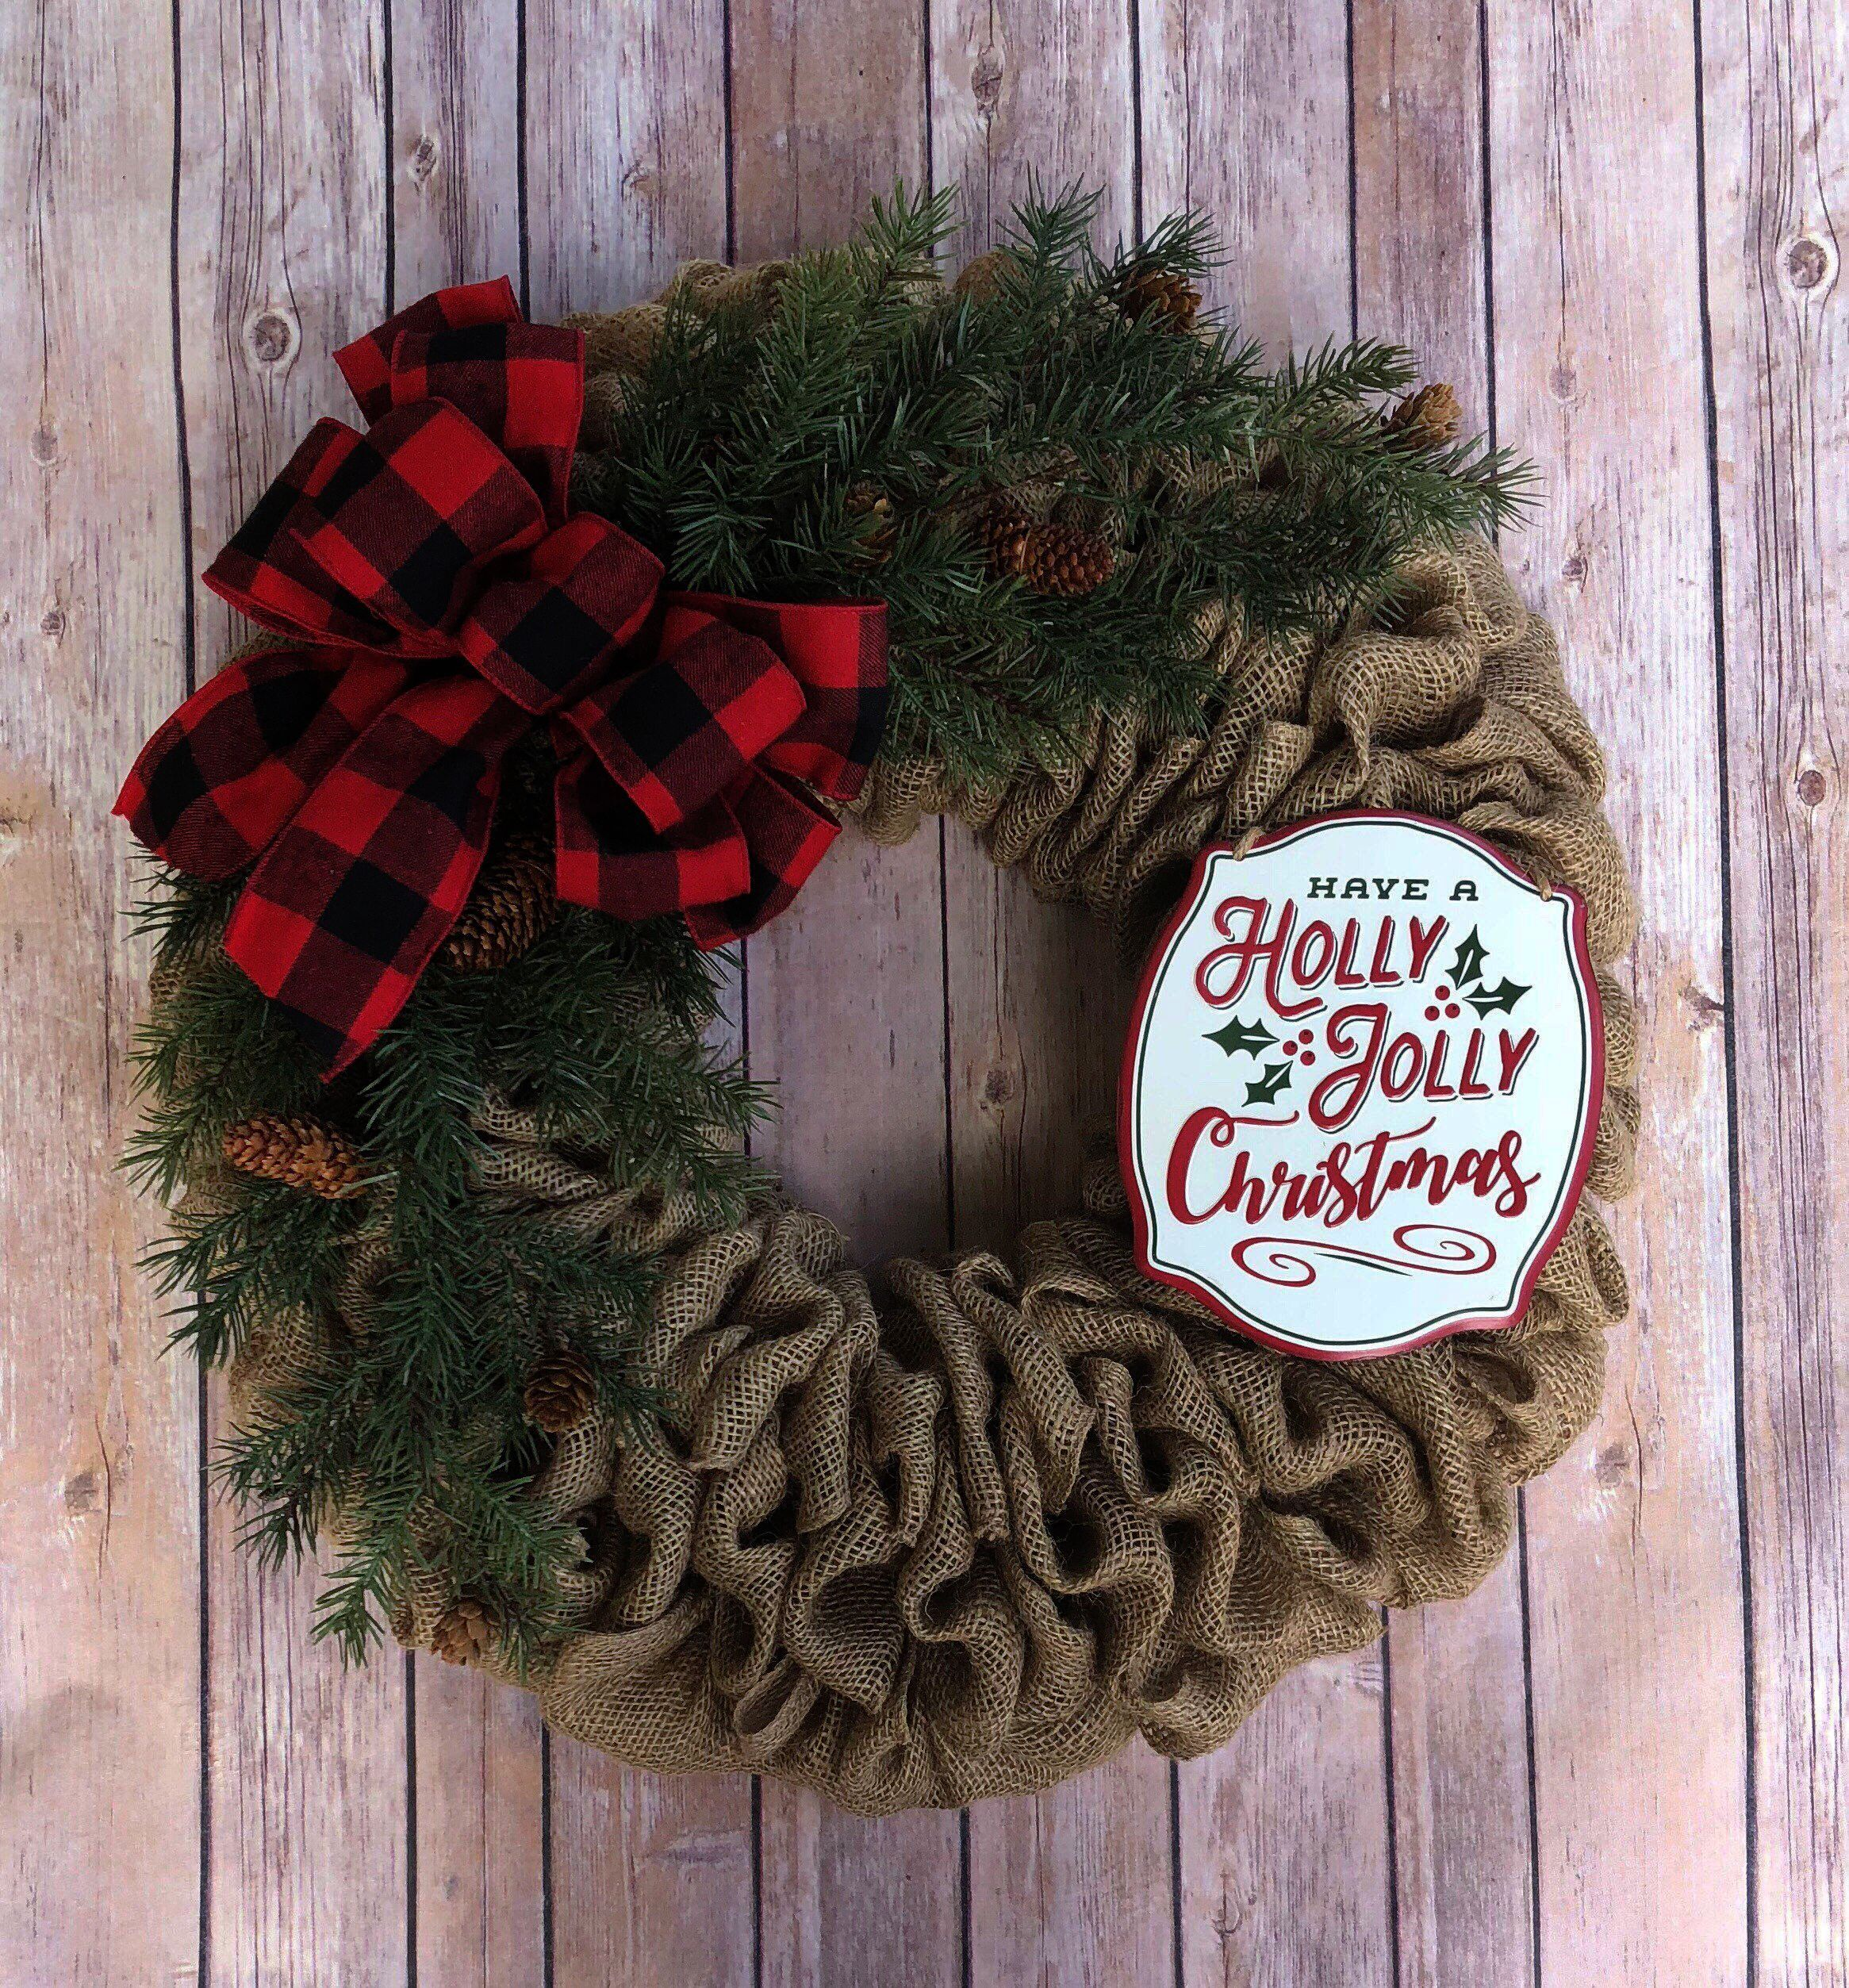 Christmas Joy Essential Oil Since Christmas Tree Shop Dining Table A Christmas Wreath Ideas For Burlap Christmas Wreath Burlap Wreath Diy Christmas Wreaths Diy